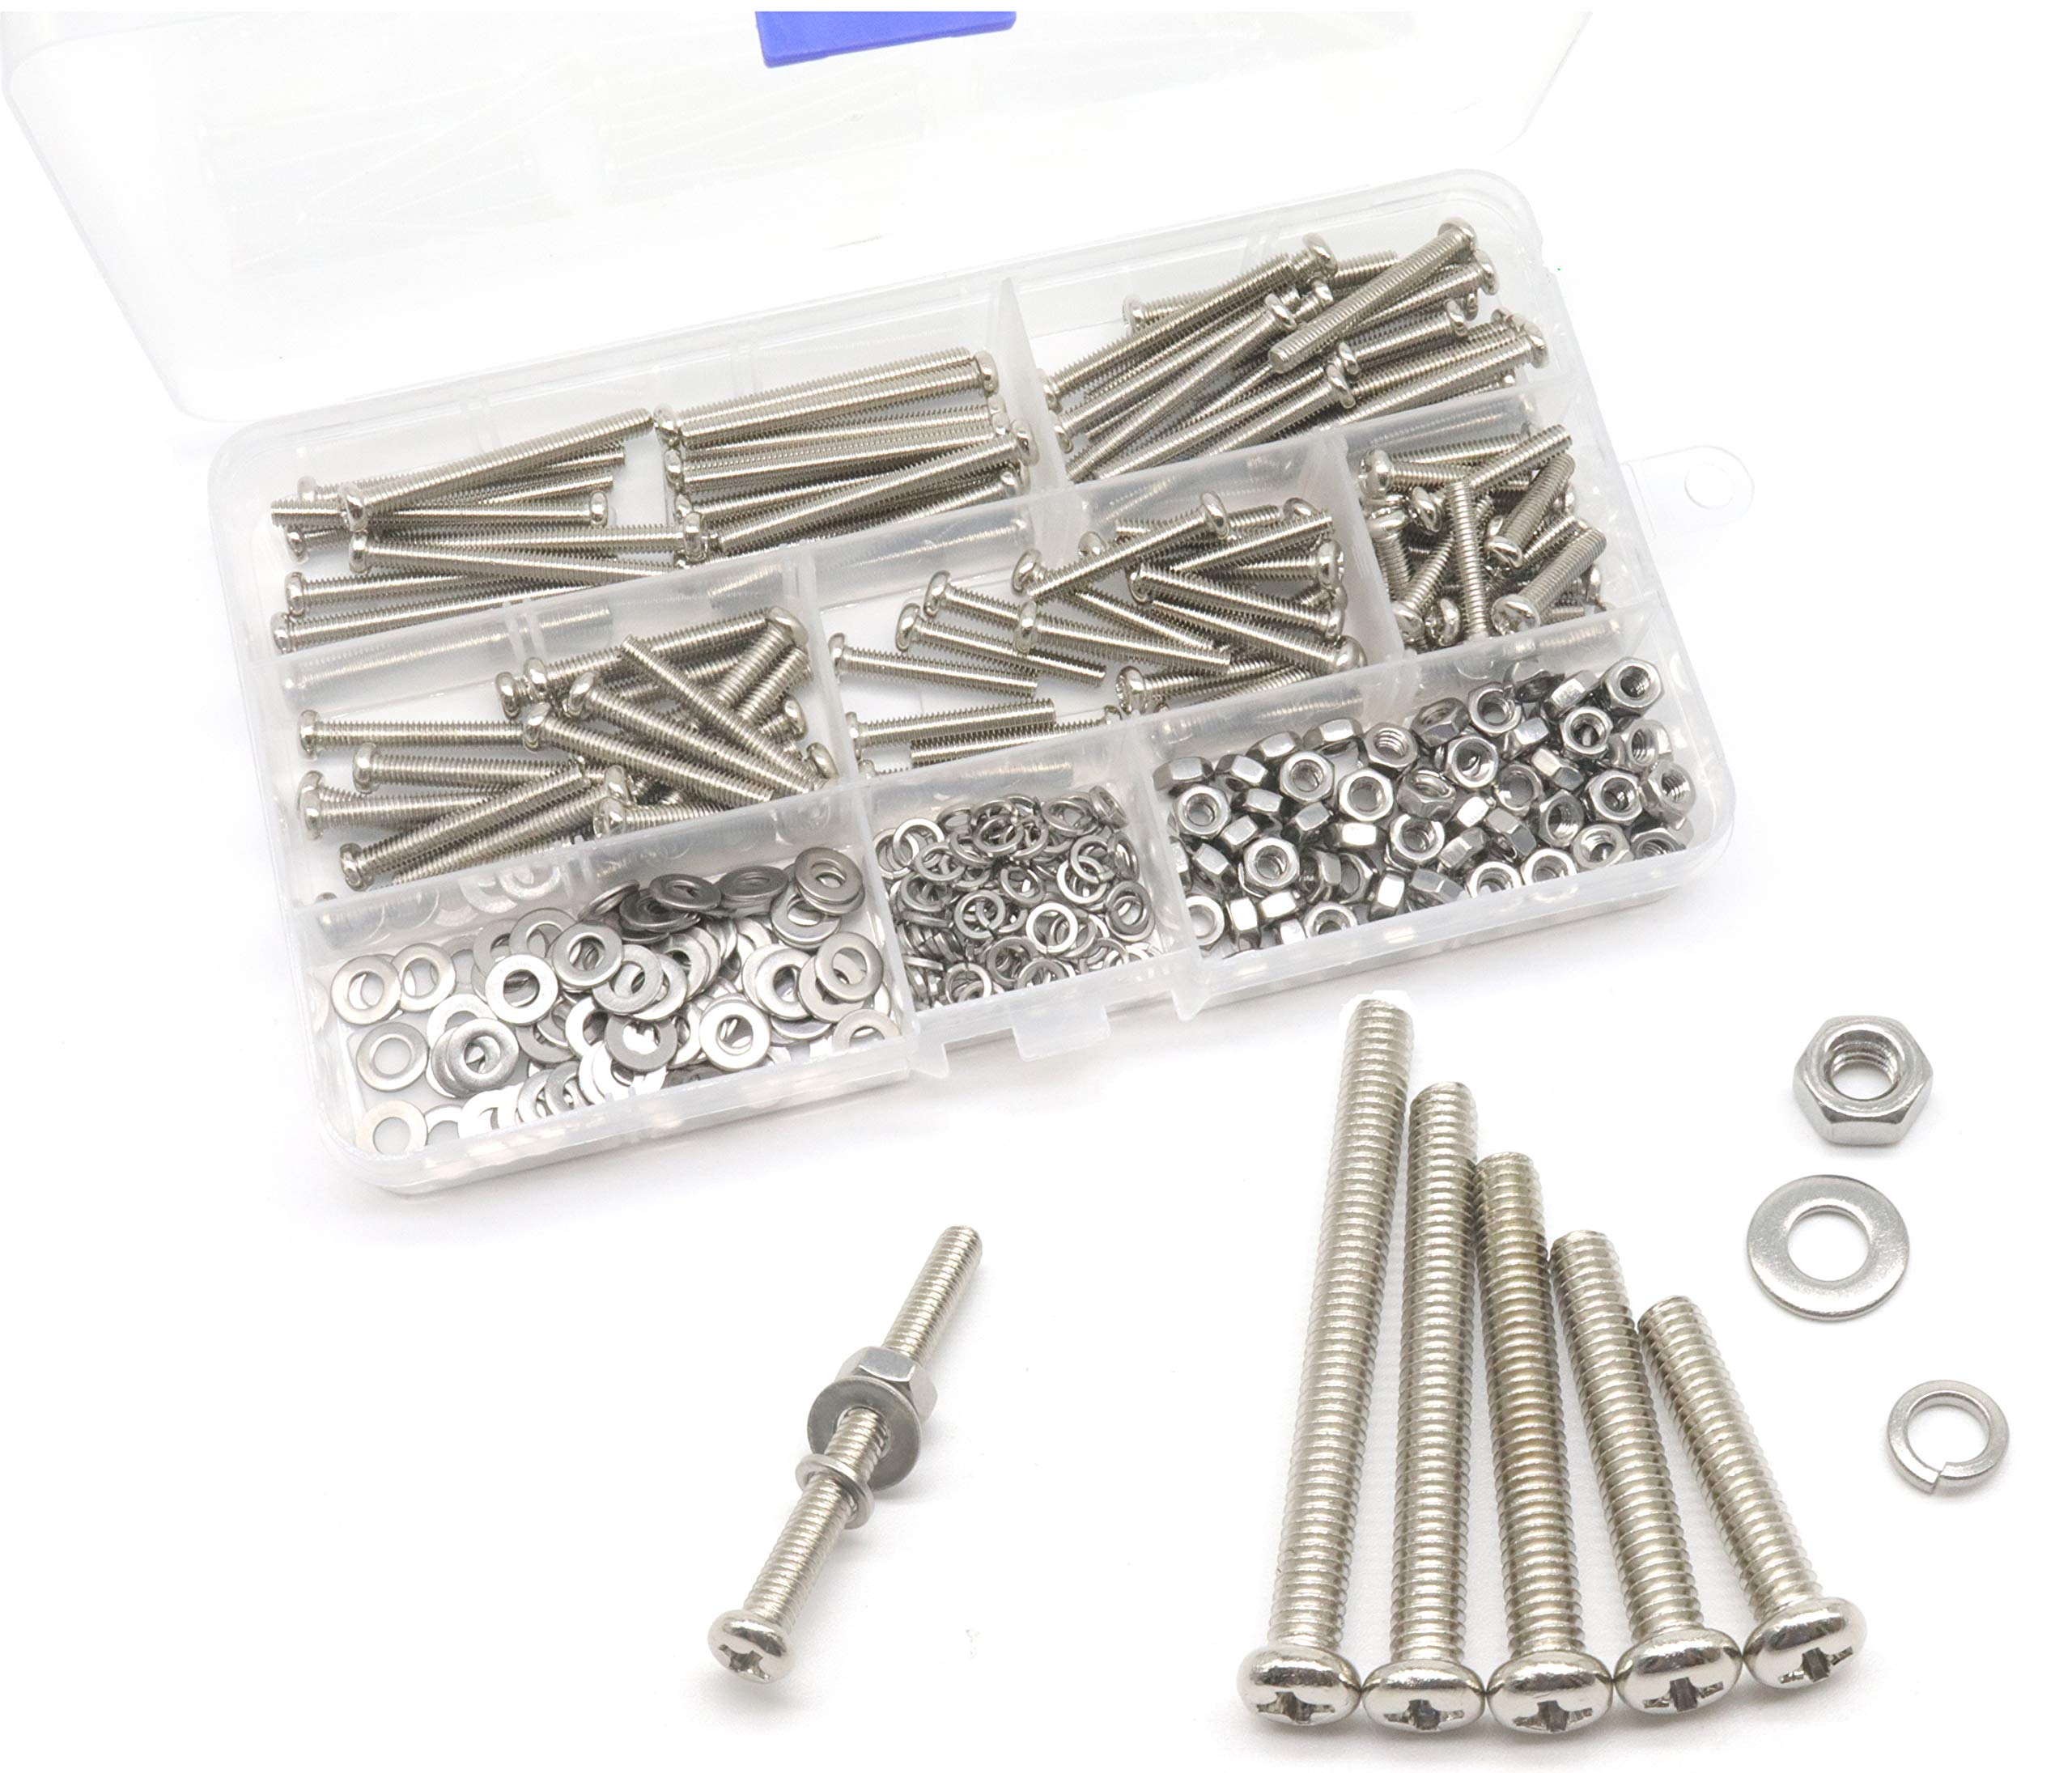 cSeao 340pcs M4 Pan Head Phillips Screws Nuts Washers Assortment Kit, 304 Stainless Steel, M4x 20mm/ 25mm/ 30mm/ 35mm/ 40mm by cSeao